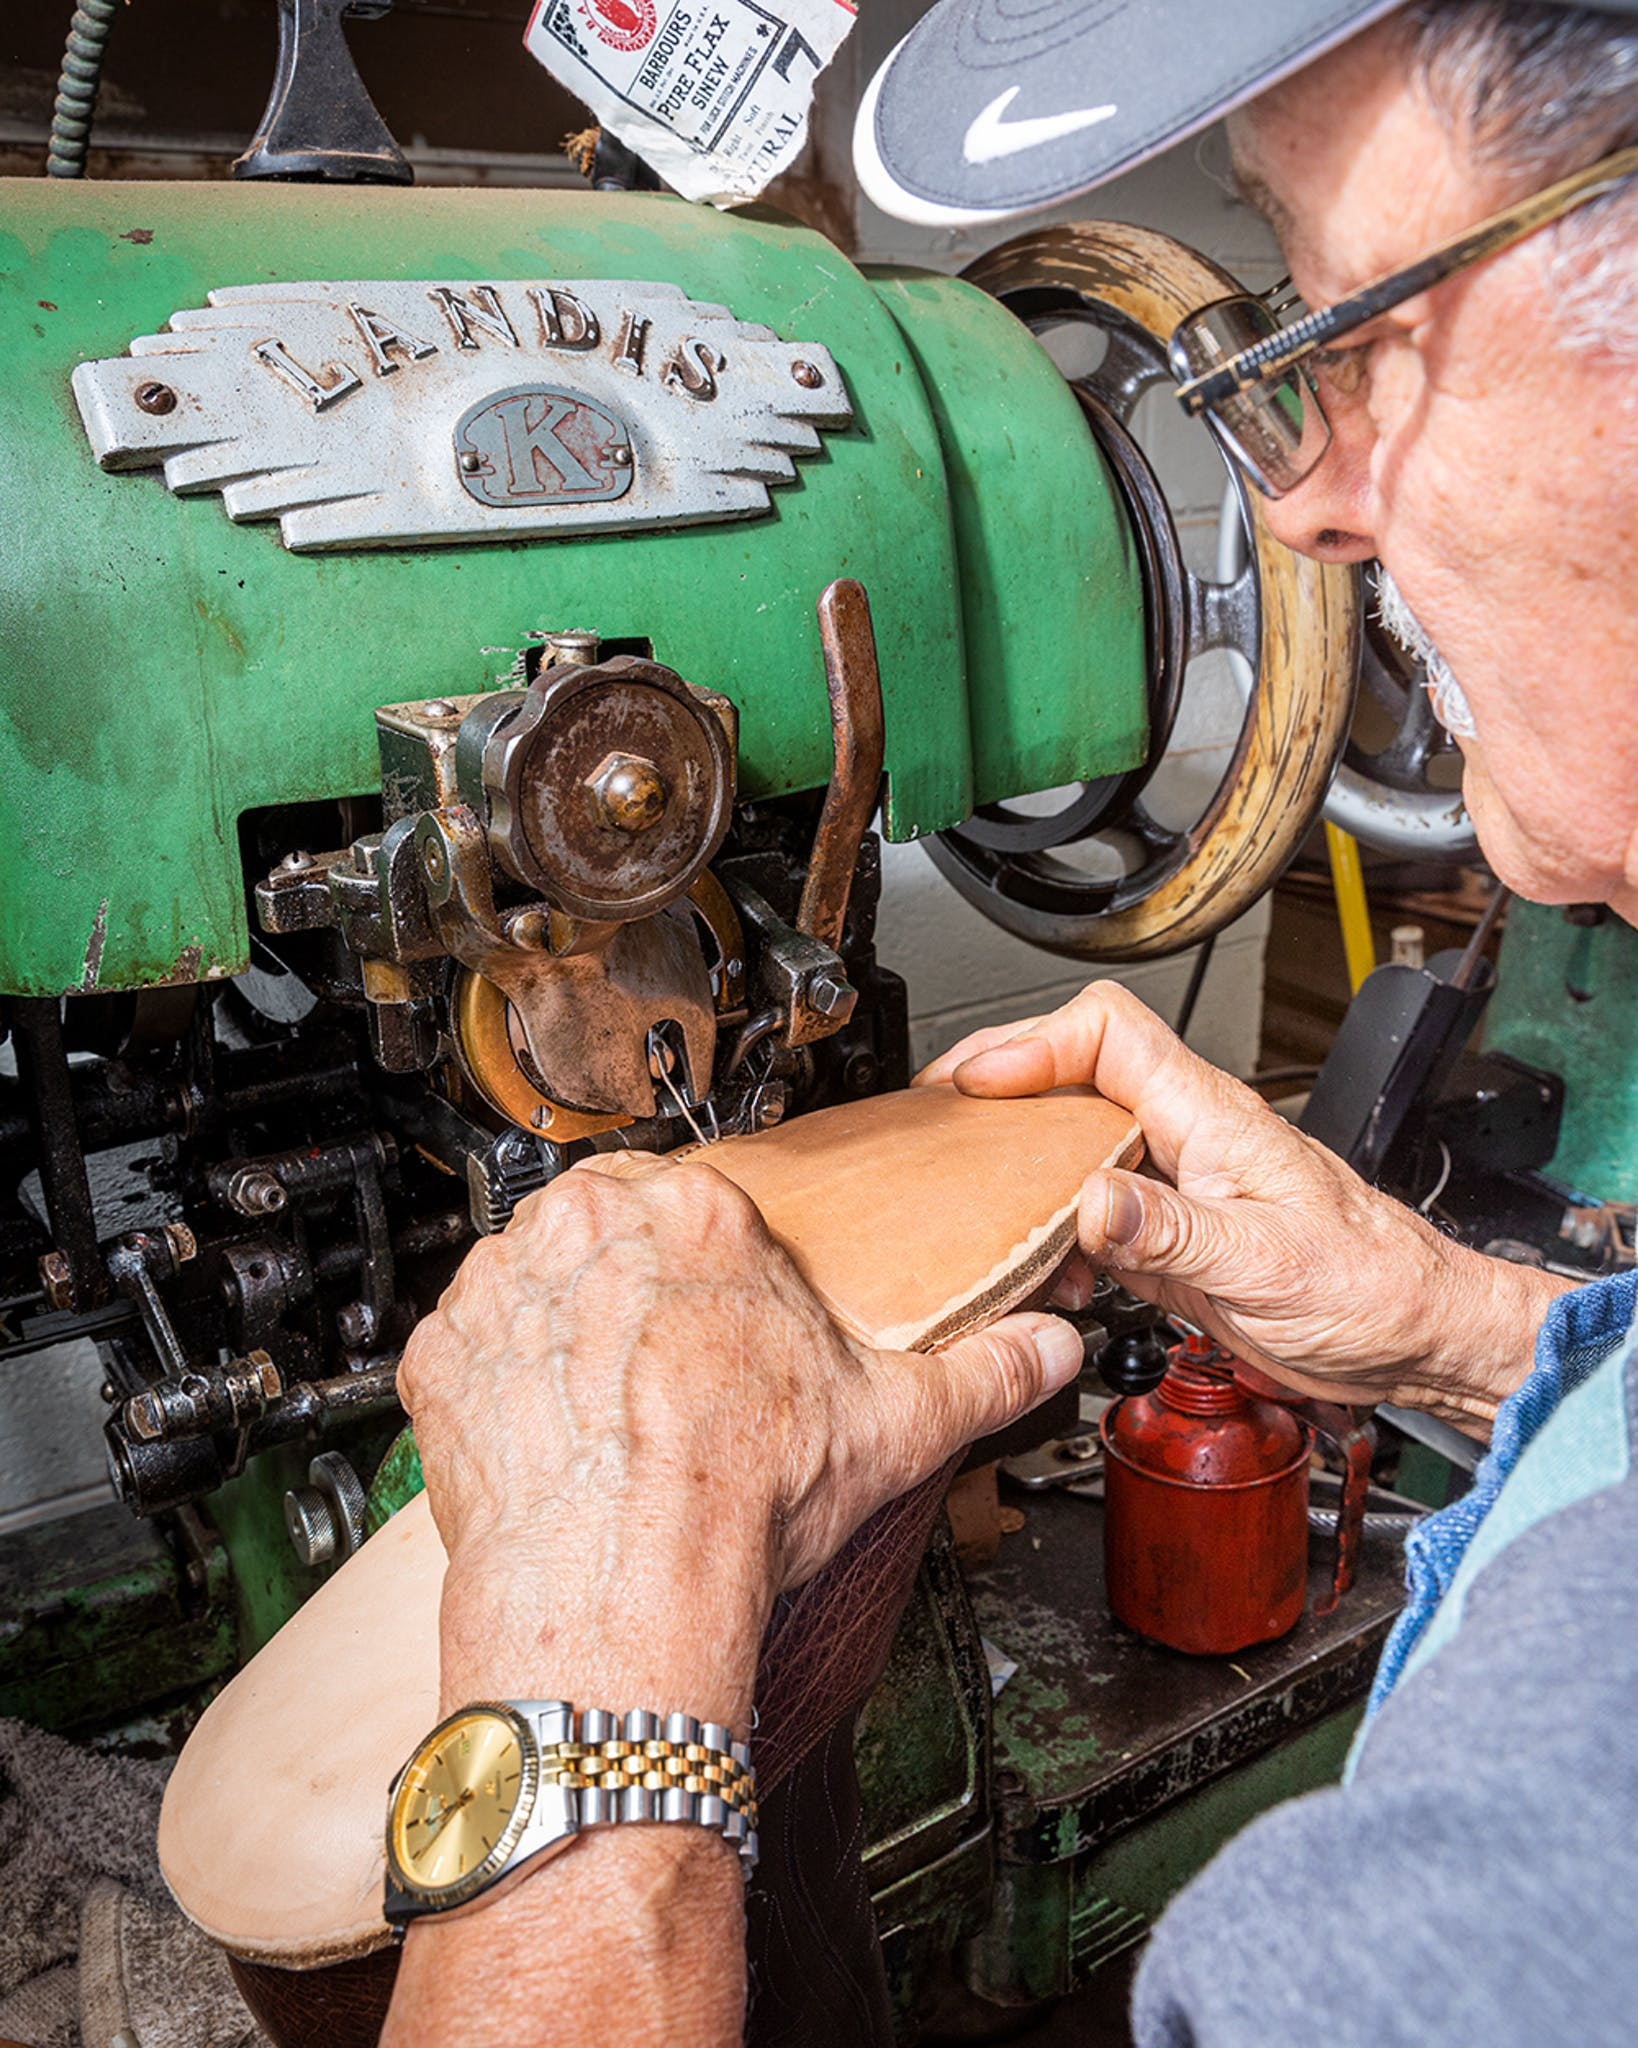 Rafael Moreno, who has crafted boots at Little's for 12 years, stitches a heavy-duty leather sole into place with an ancient industrial sewing machine designed just for this purpose.